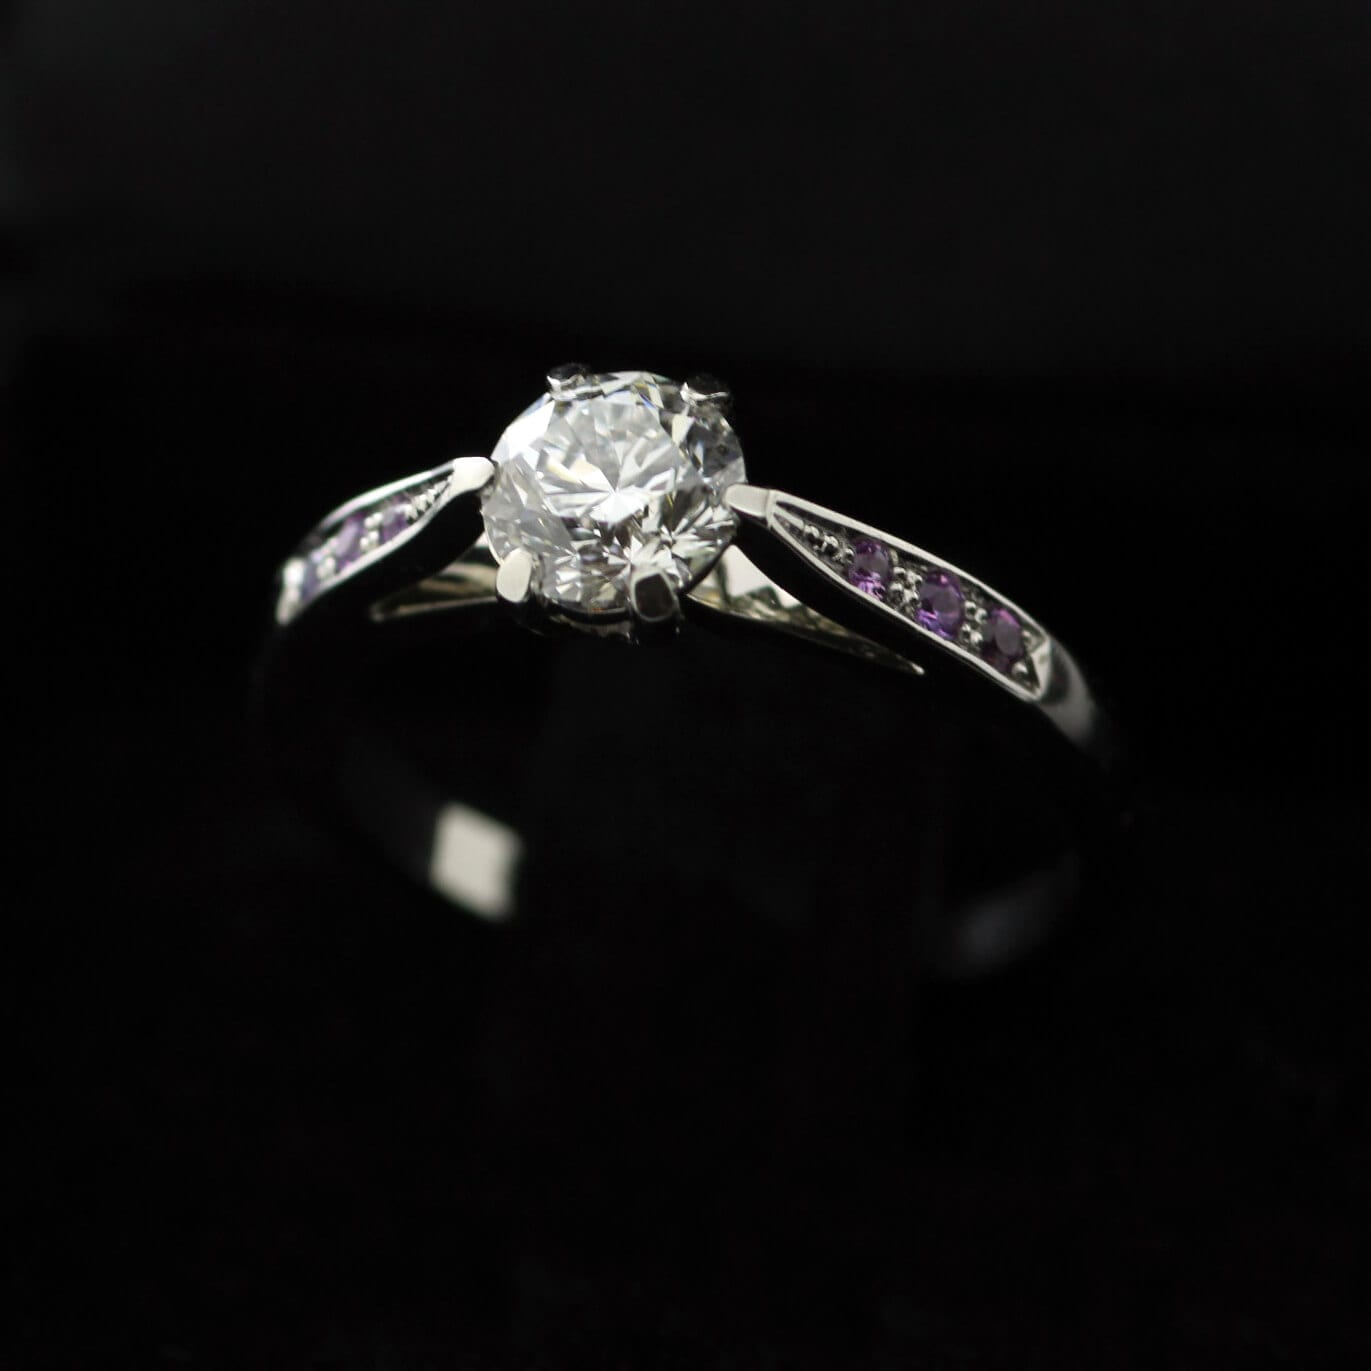 Bespoke handcrafted Platinum, Diamond and Pink Sapphire engagement ring